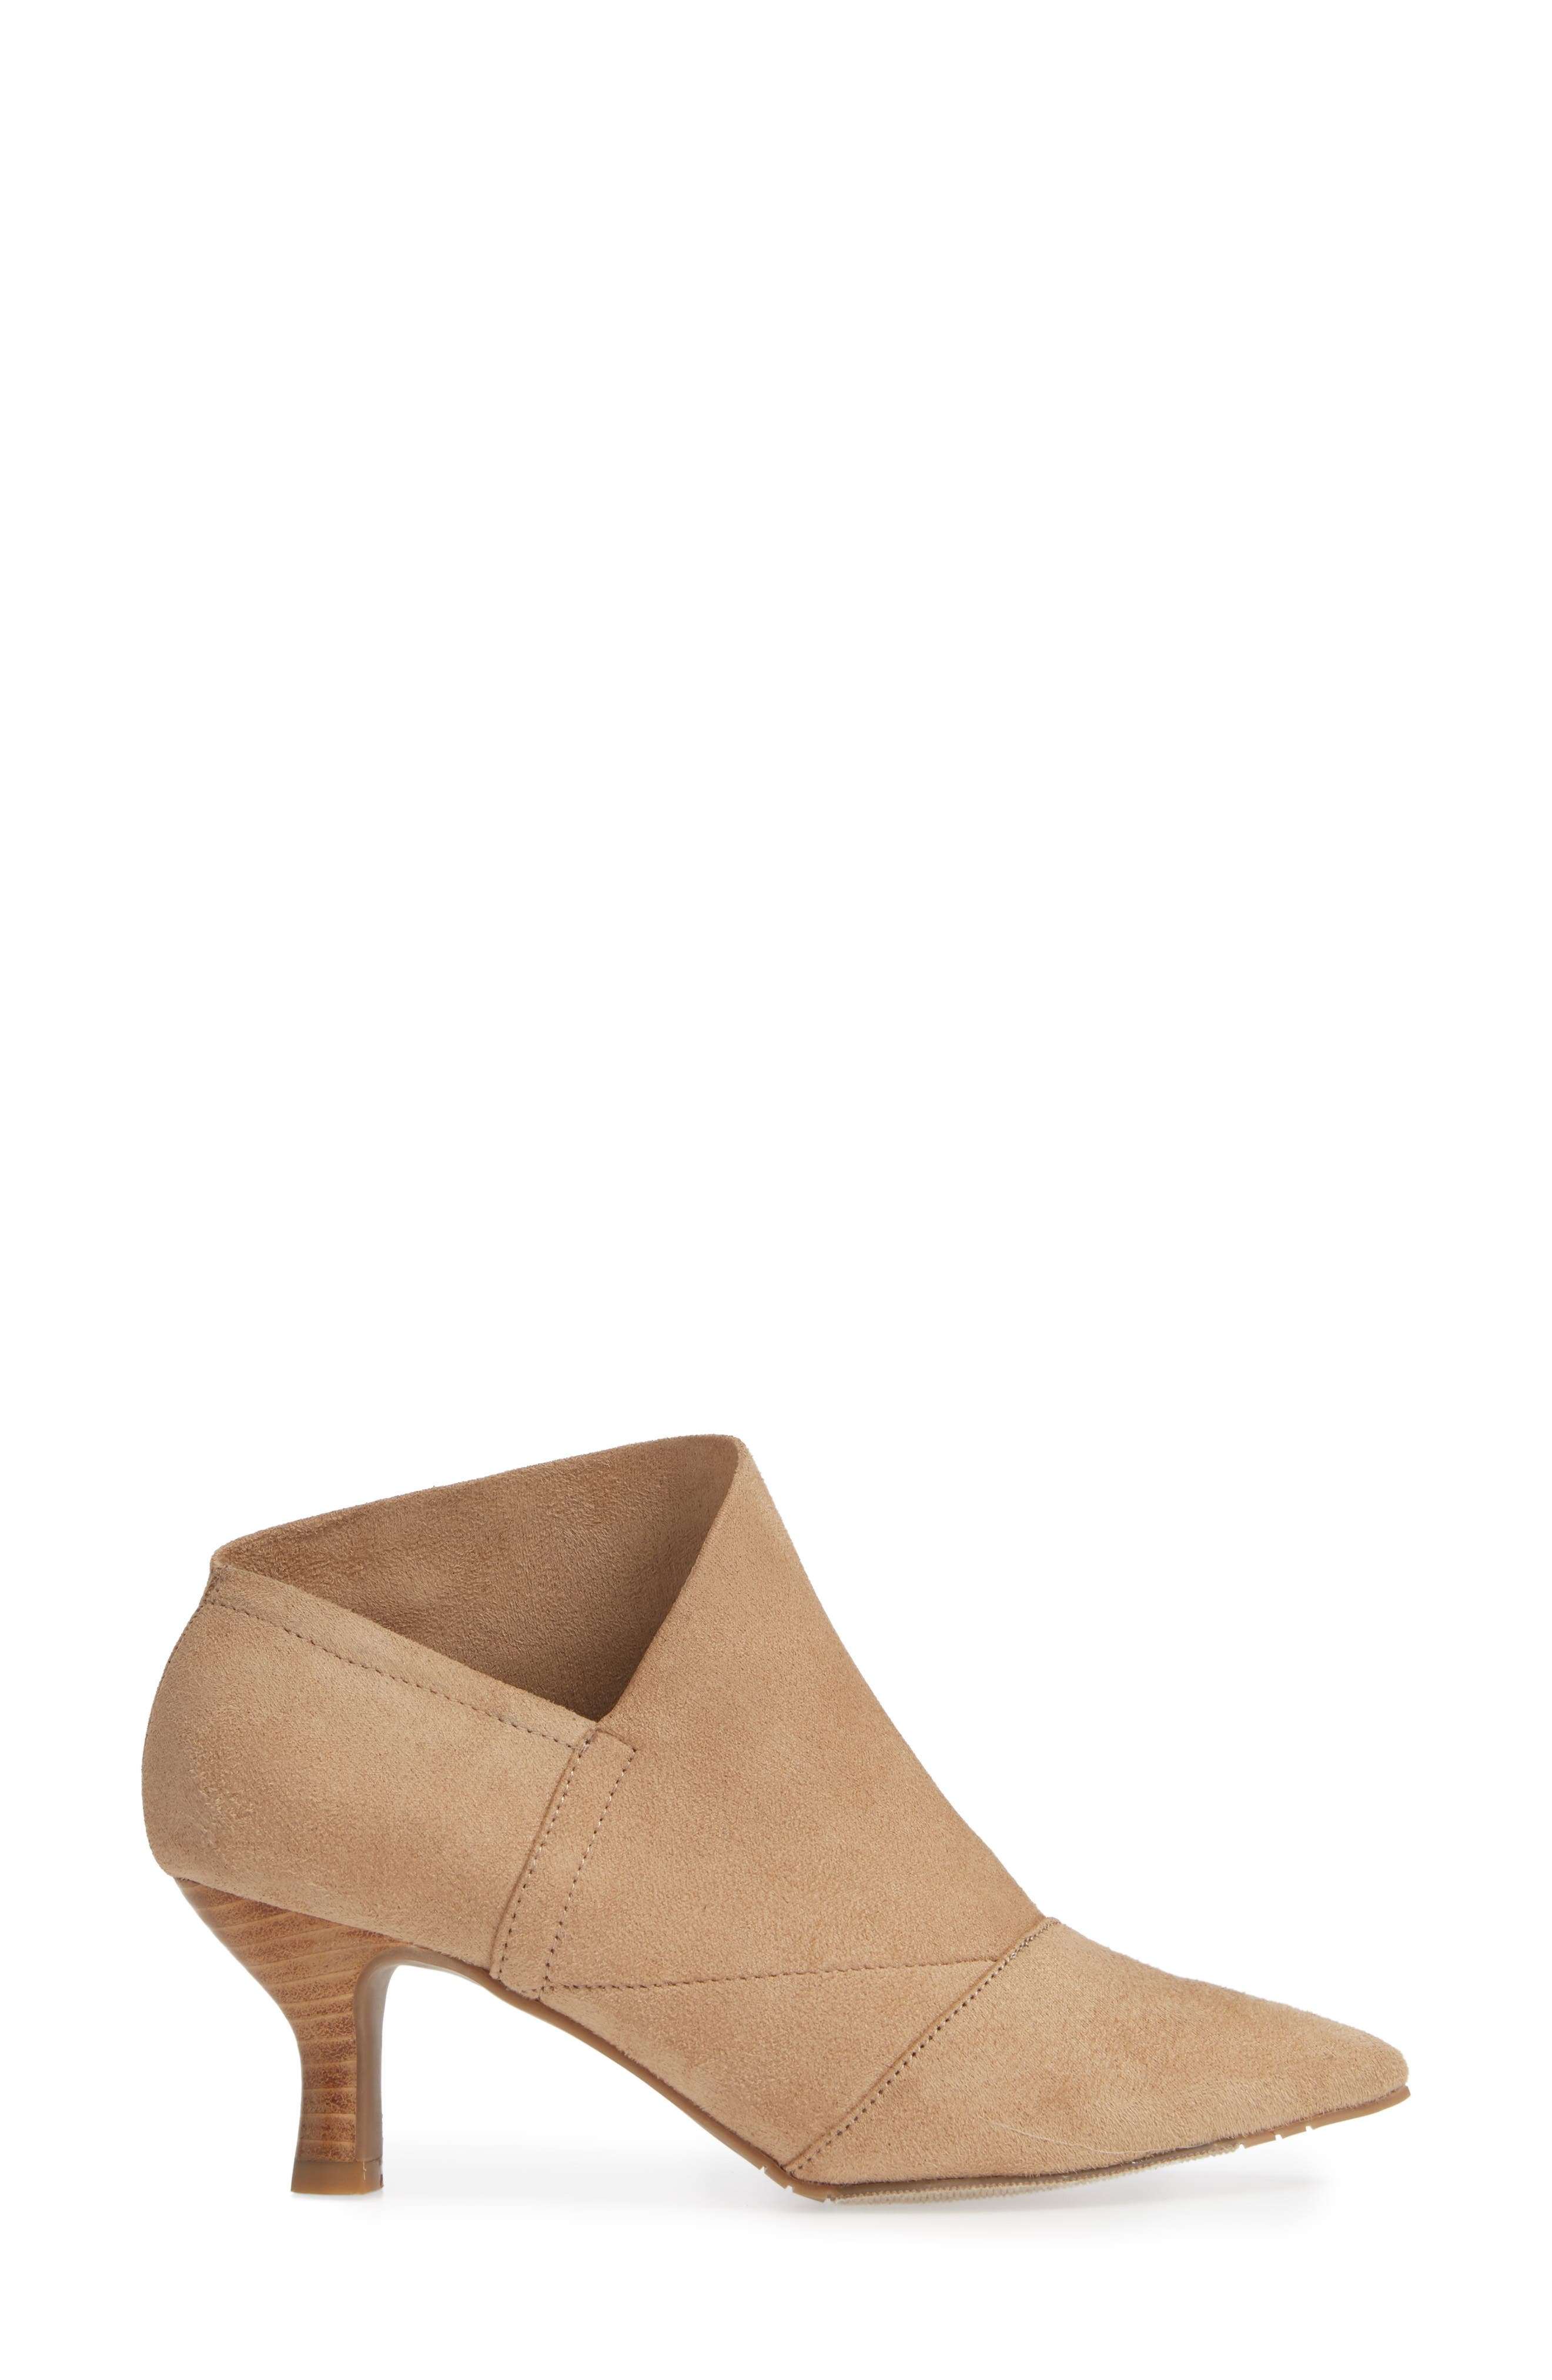 Hayes Pointy Toe Bootie,                             Alternate thumbnail 3, color,                             OAT SUEDE